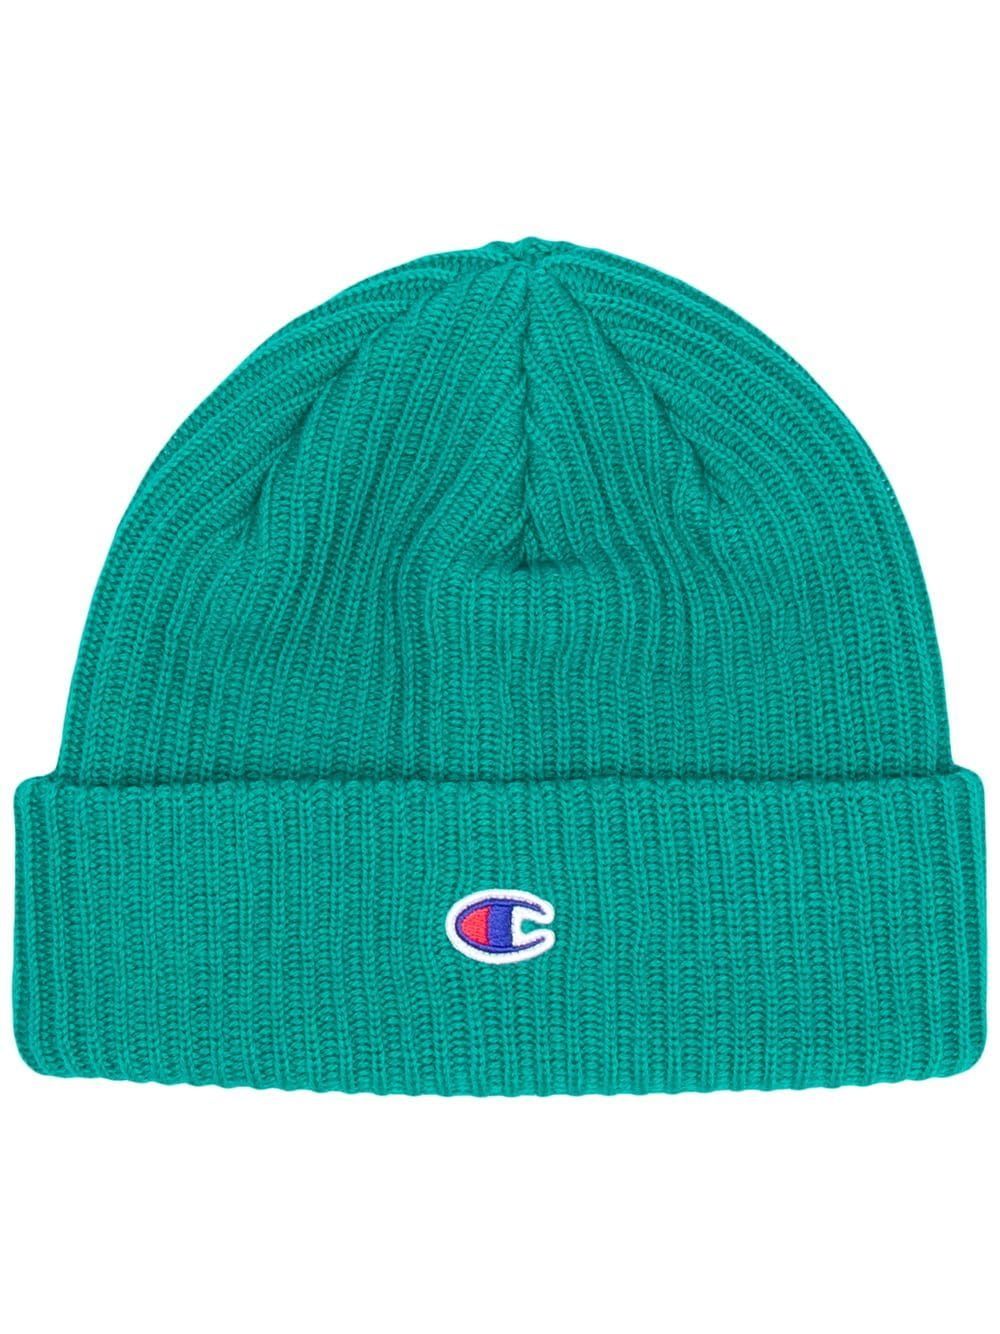 26aa739478a5a4 CHAMPION CHAMPION EMBROIDERED LOGO BEANIE - GREEN. #champion ...